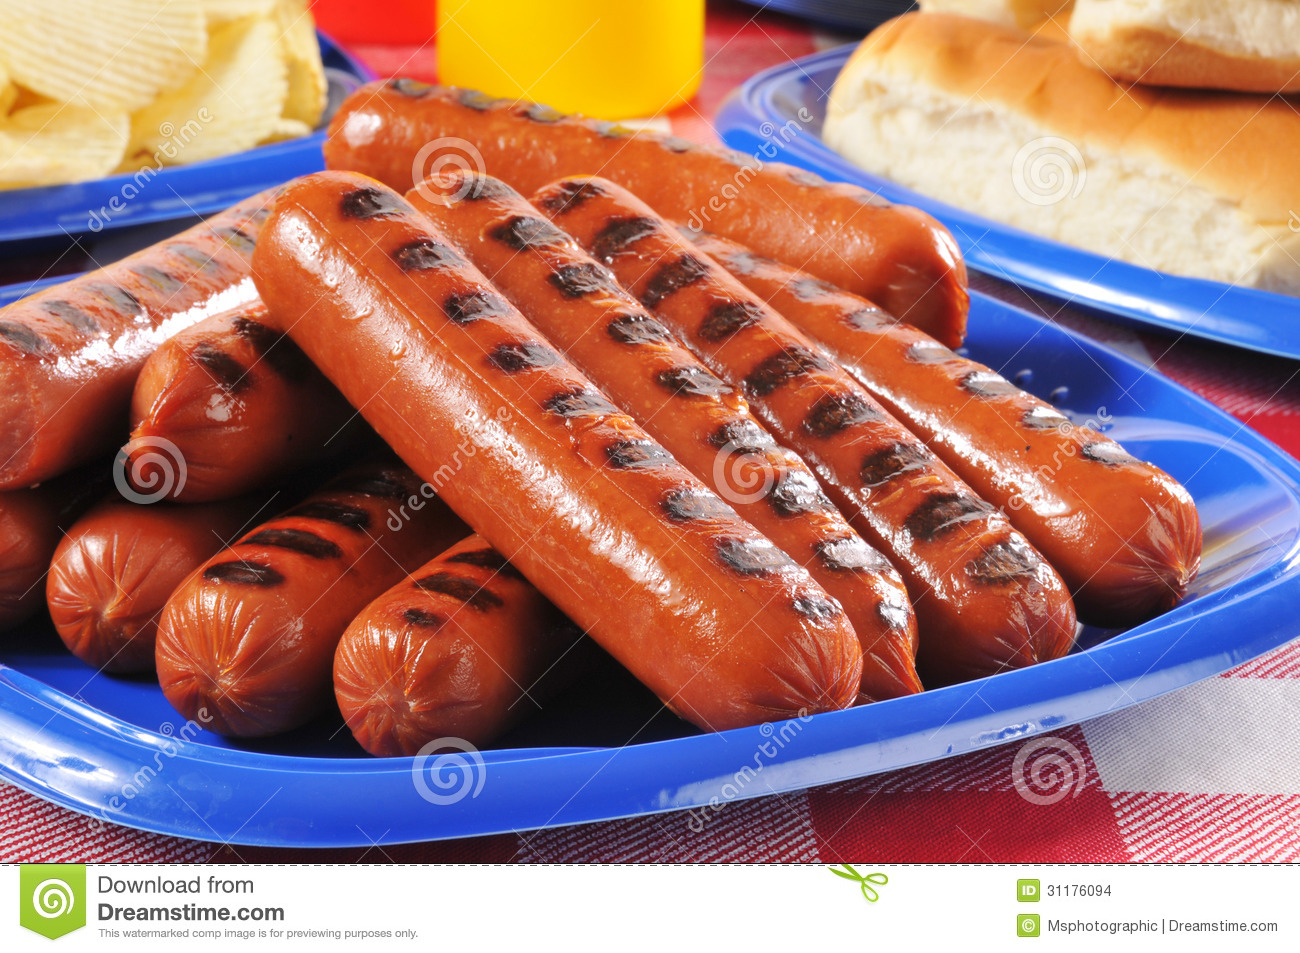 how to make hot dog meat